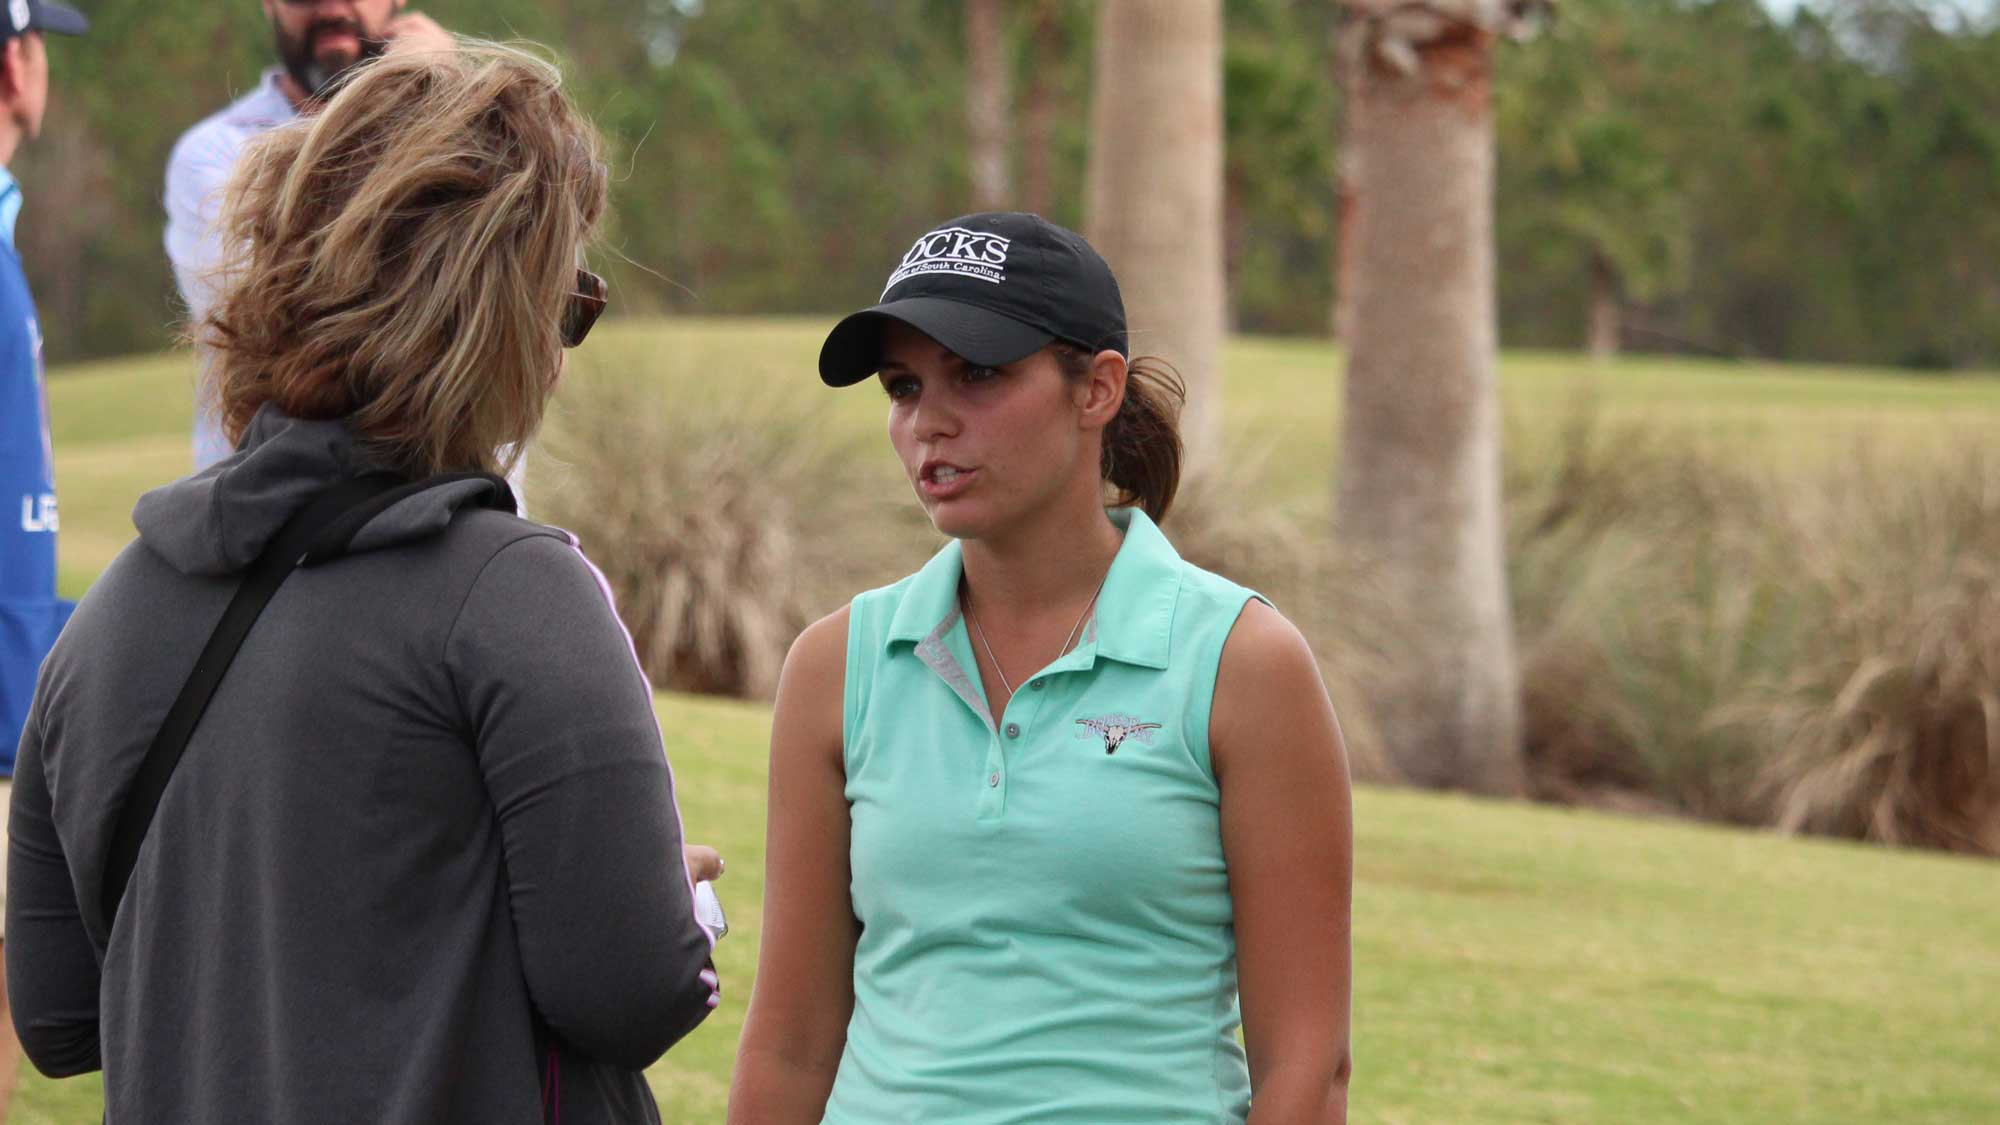 South Carolina Amateur and Thailand Teen Share Lead at LPGA Qualifying Tournament